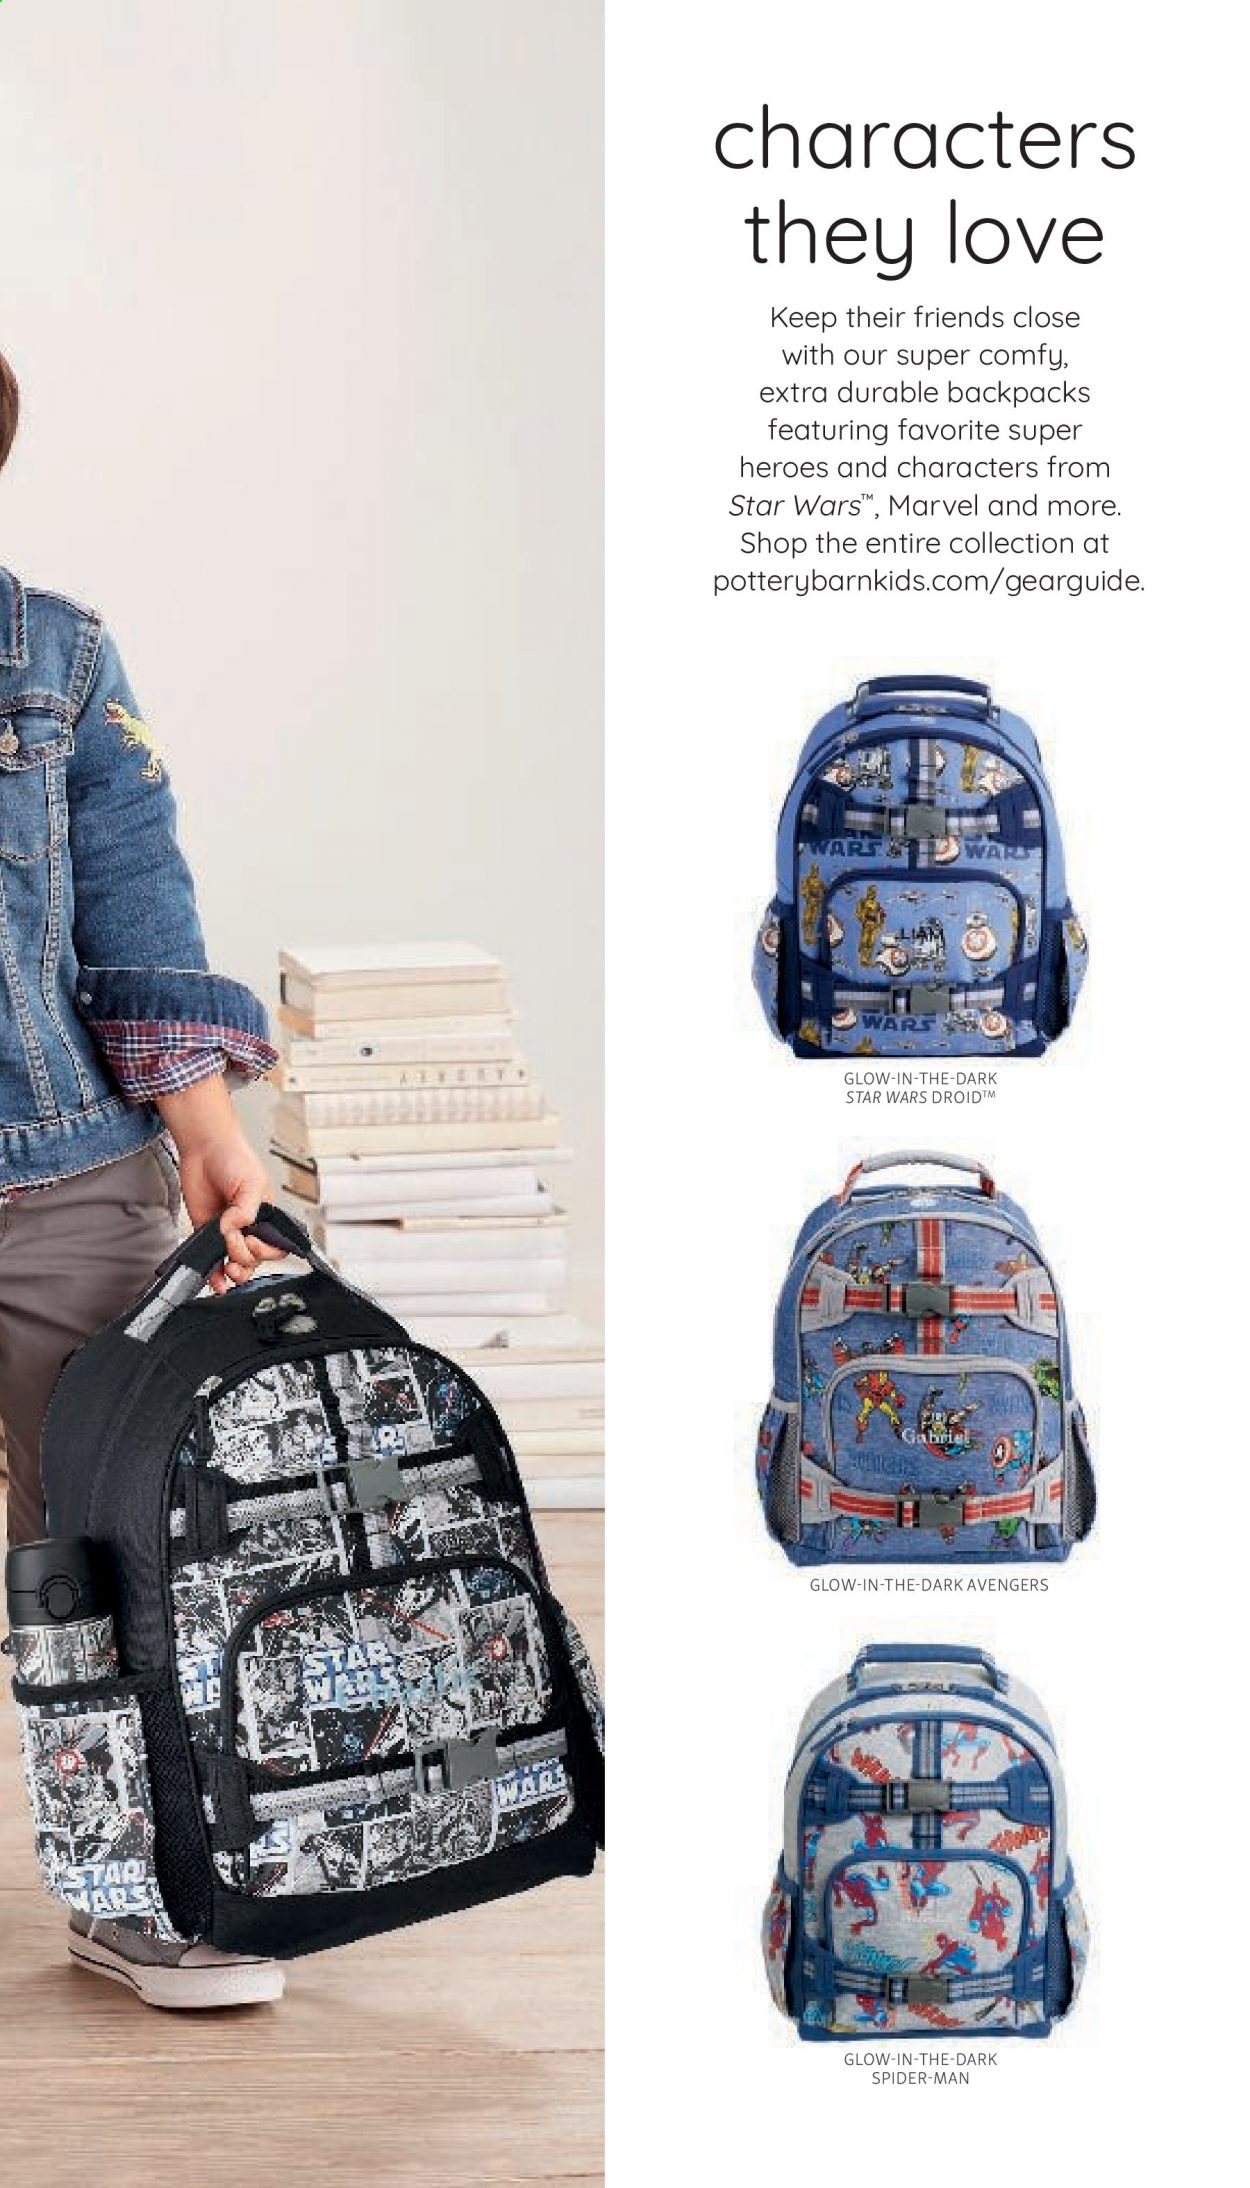 Pottery Barn Ad Kids - Back to School 2021 - Page 11